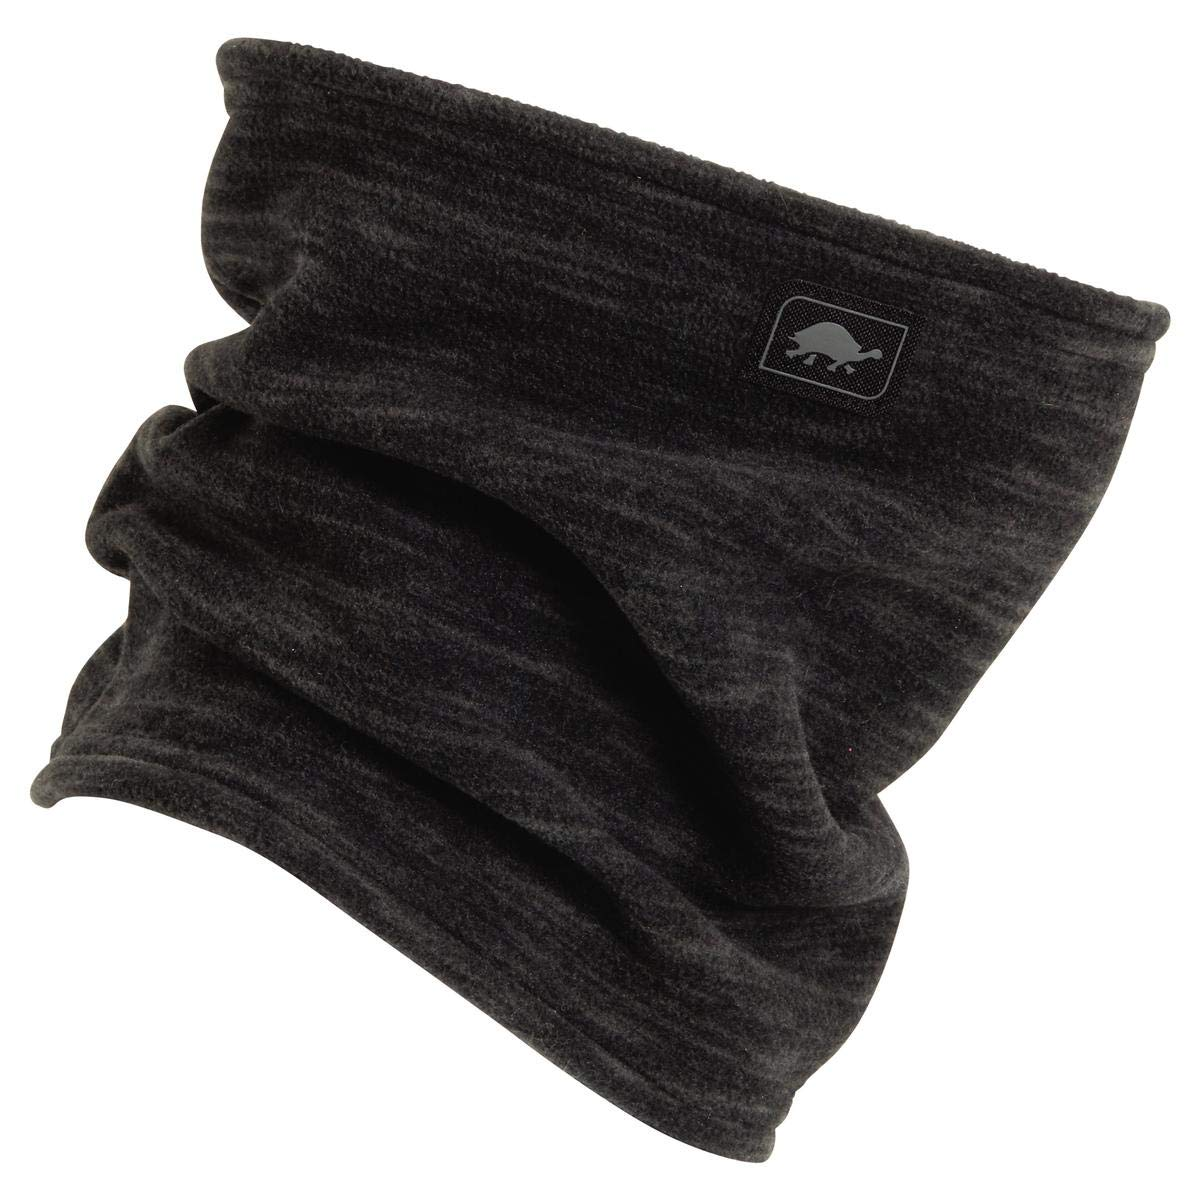 Turtle Fur Polartec Thermal Pro Stria Single-Layer Neck Gaiter, Onyx, One Size by Turtle Fur